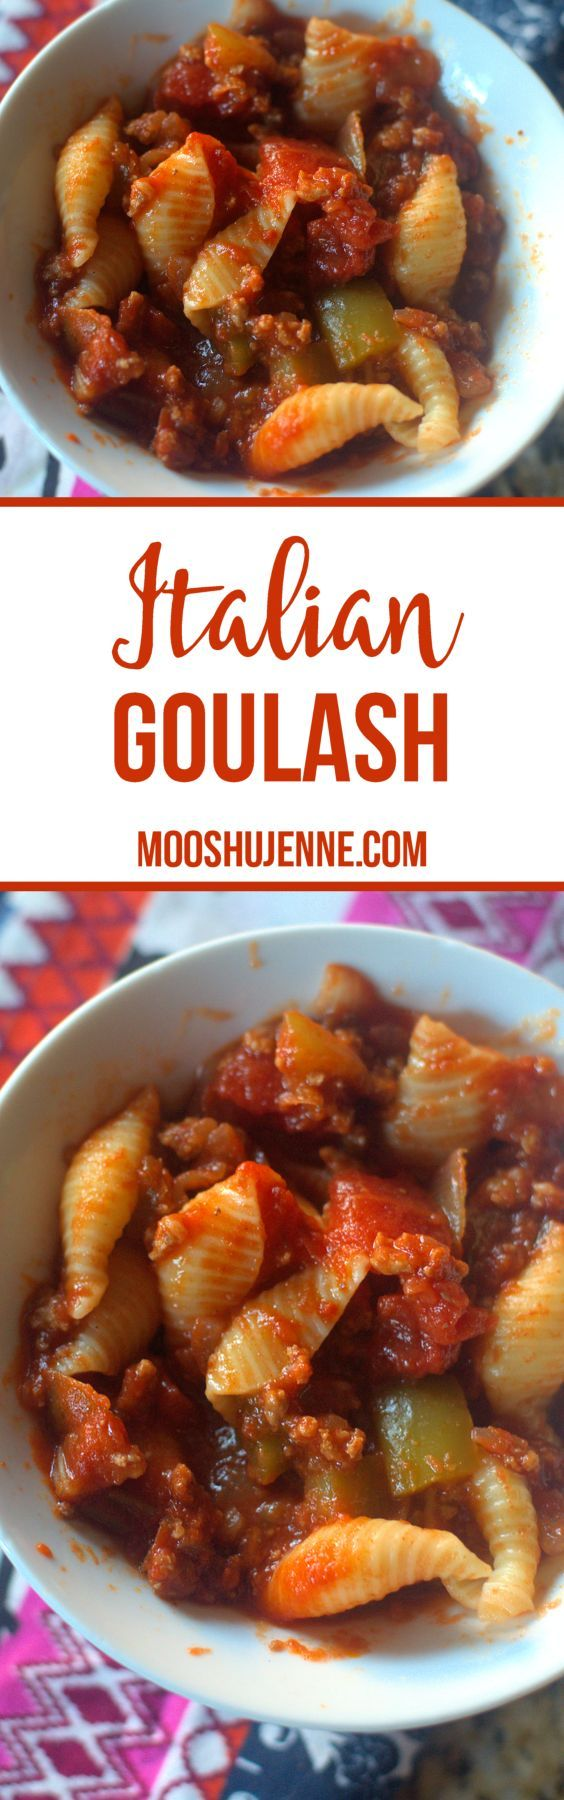 Italian Goulash is what she called it. Goulash has many forms from stewed beef in paprika to the versions I am used to with ground beef or even stew beef or pork for the more traditional Italian versions.